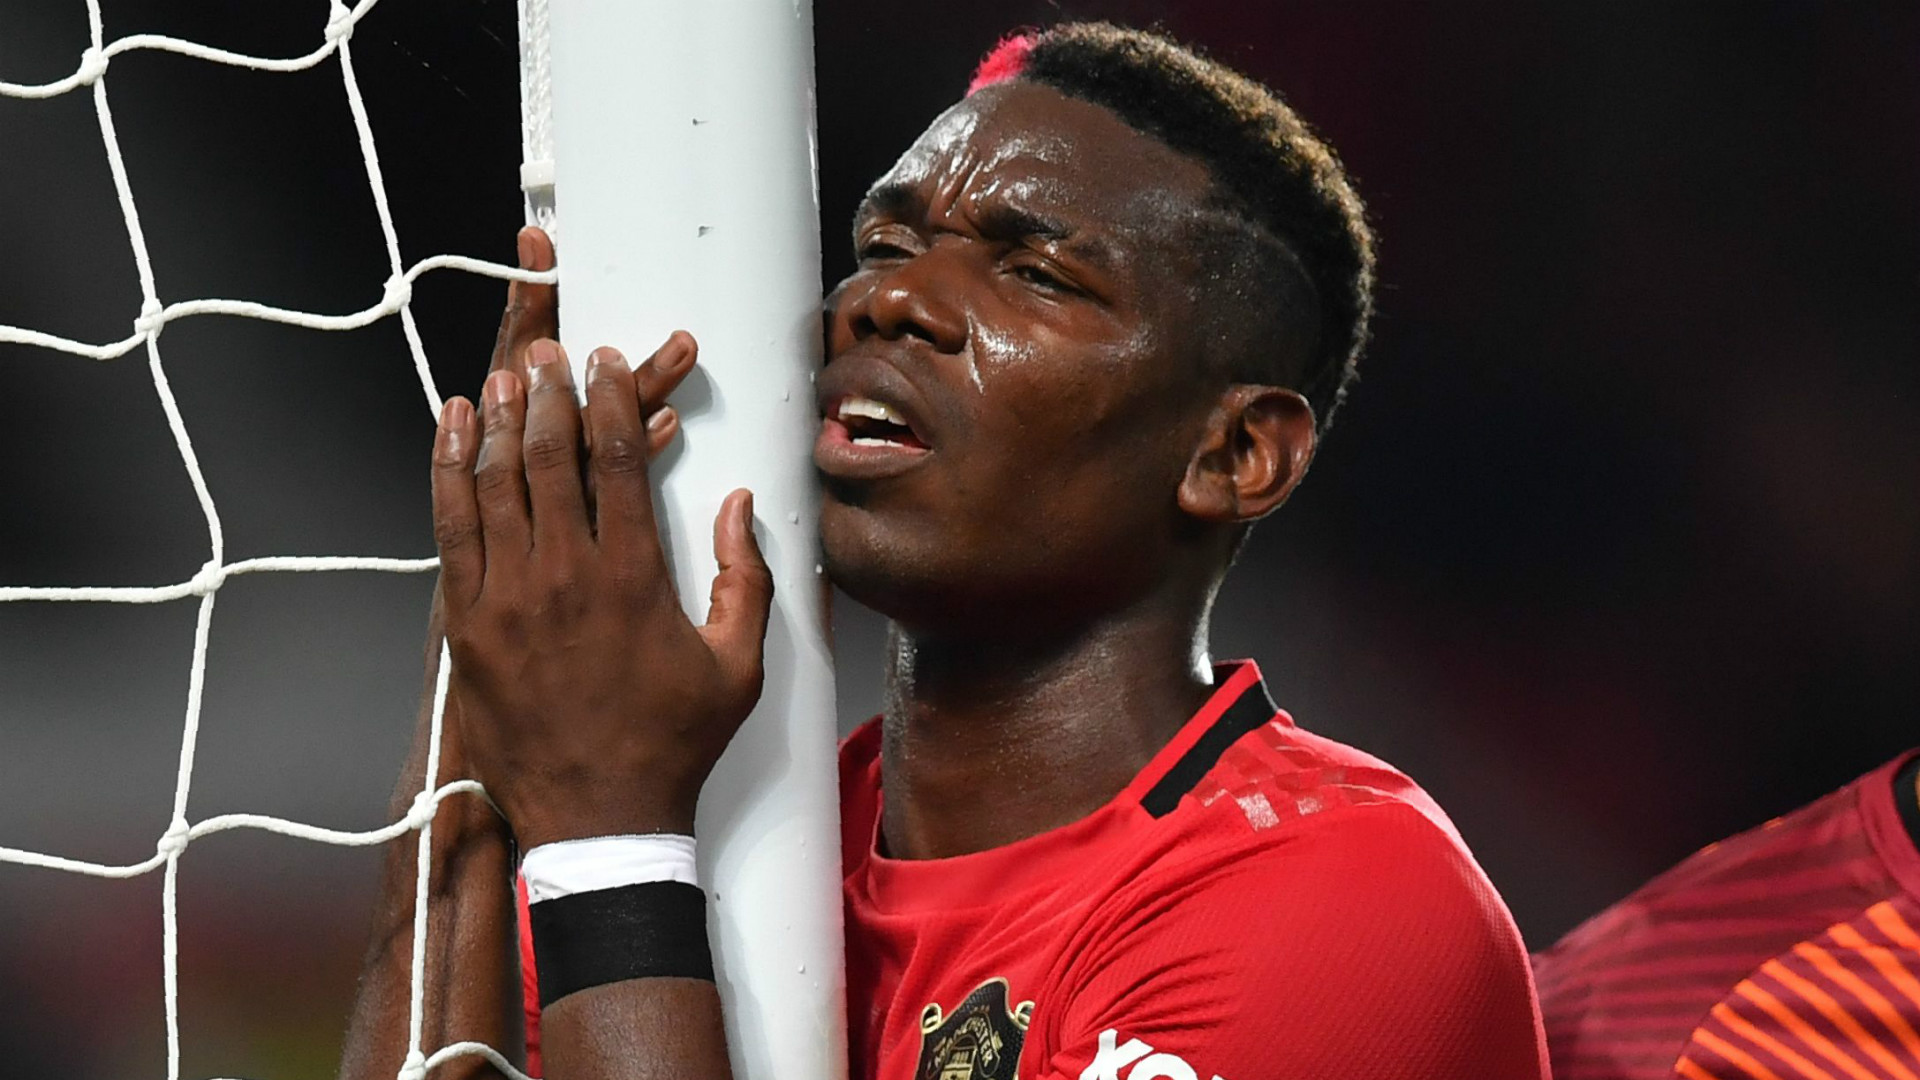 'Pogba's frustrated, there are so many problems around him' – Man Utd star lacks consistency, says Leboeuf